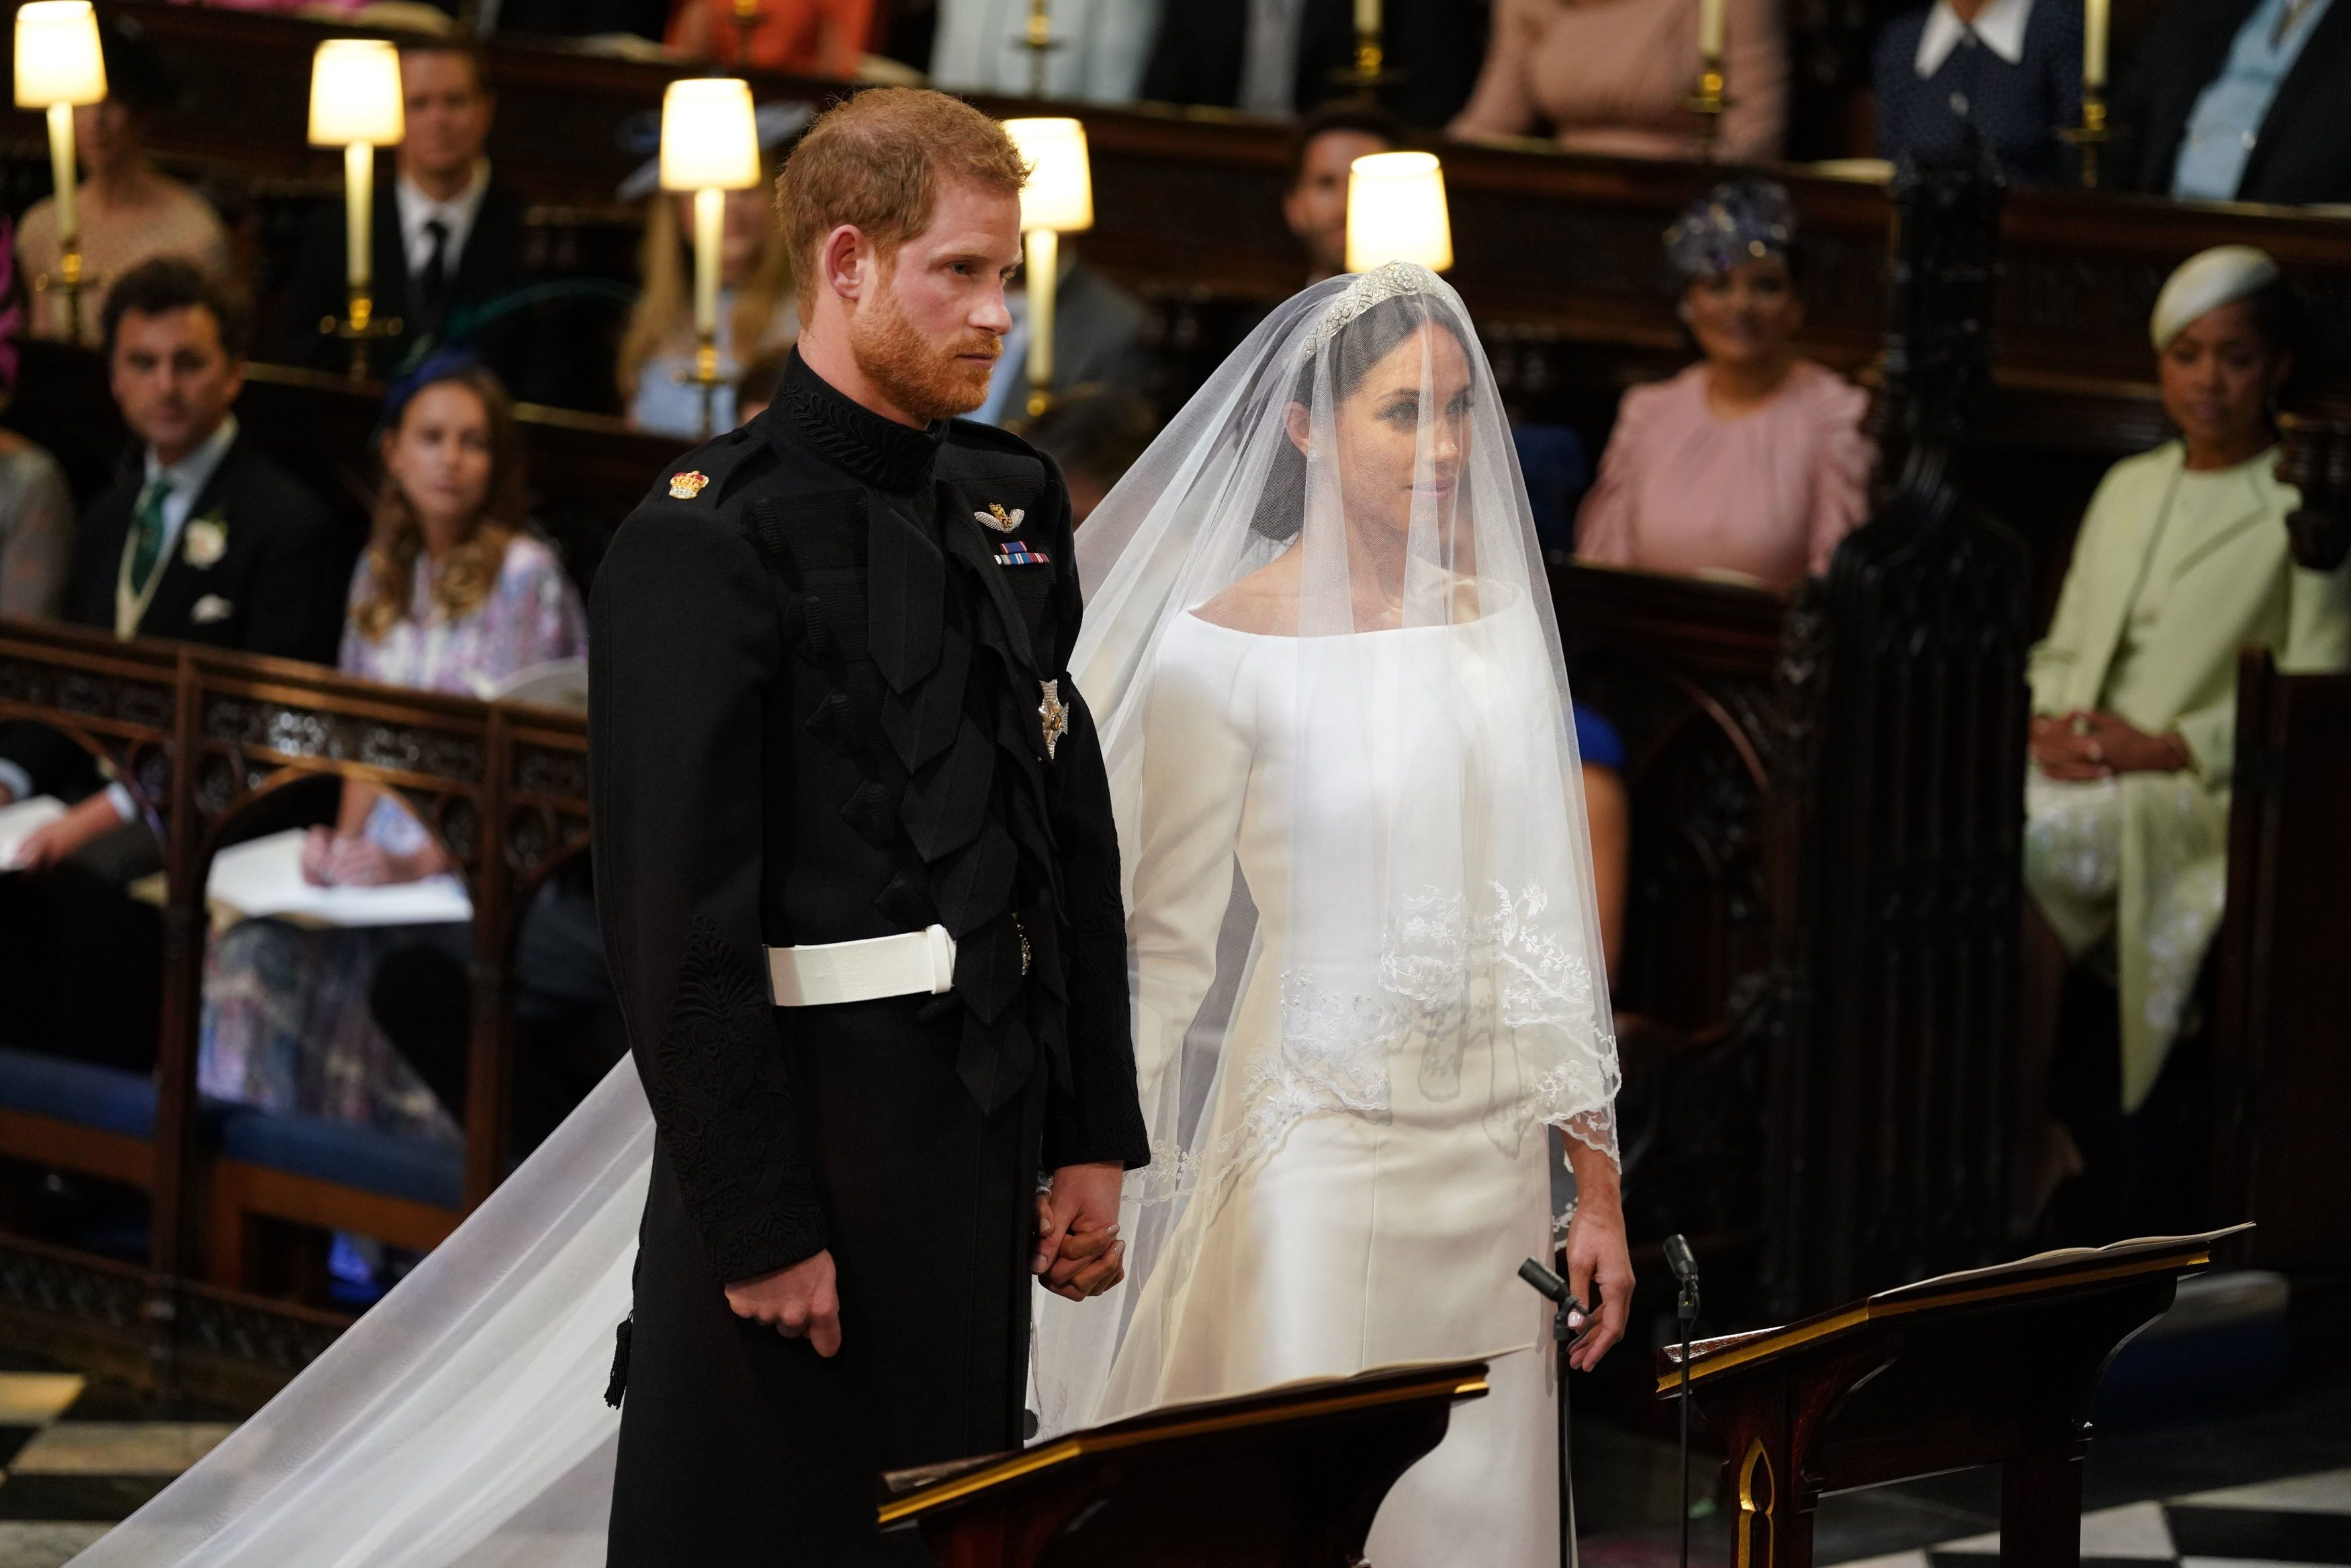 Michael Curry Royal Wedding.Michael Curry Read His Sermon Off An Ipad At Meghan Markle And